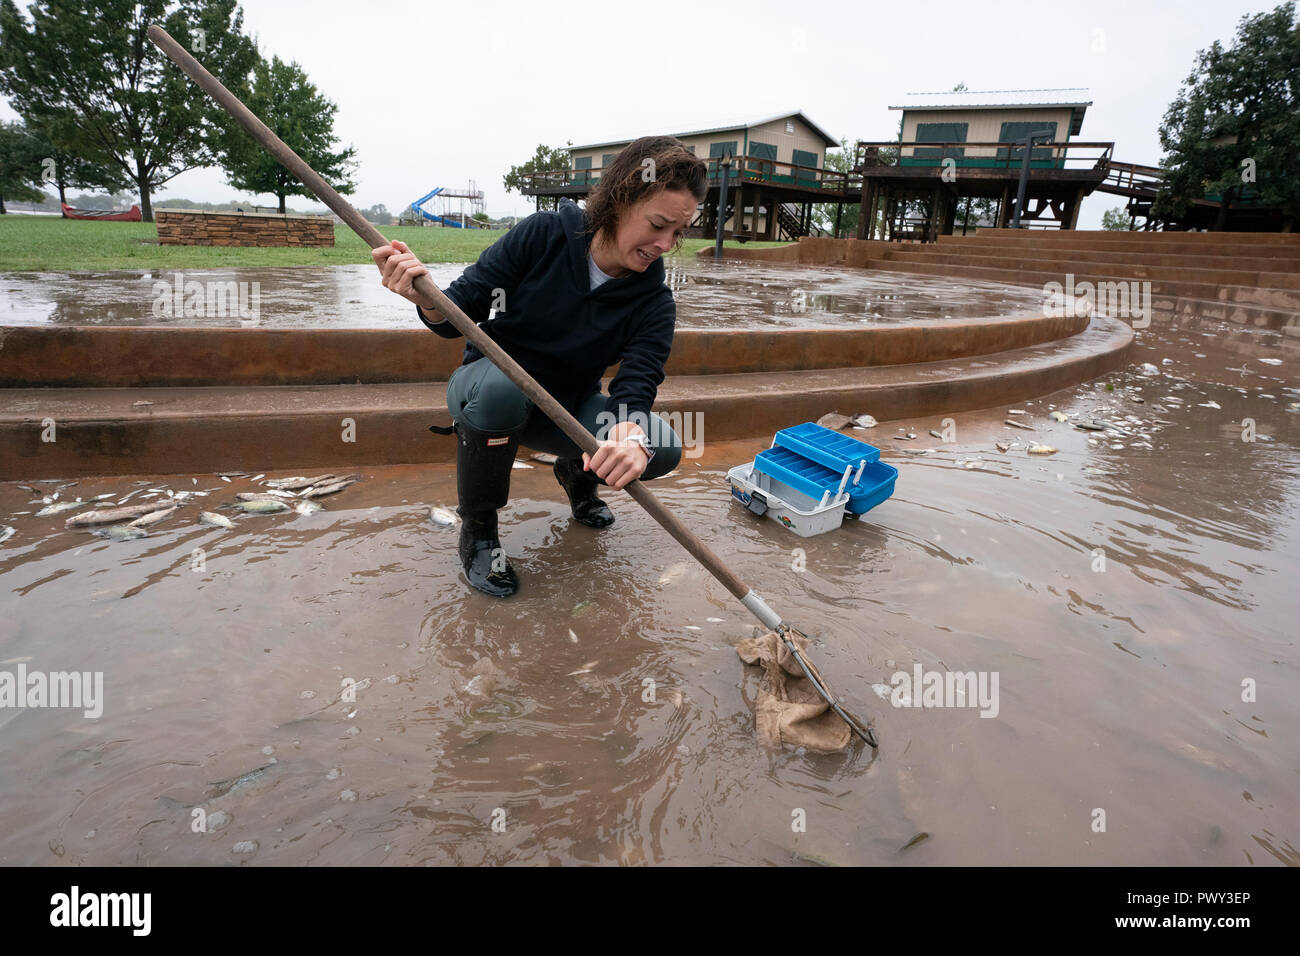 A female worker uses a long-handled net to scoop up dead fish at a camp on the shore of Lake LBJ as floodwaters start to recede. The area was hard hit by record rains along the Llano River that raised lake levels rapidly and stranded fish in shallows. - Stock Image